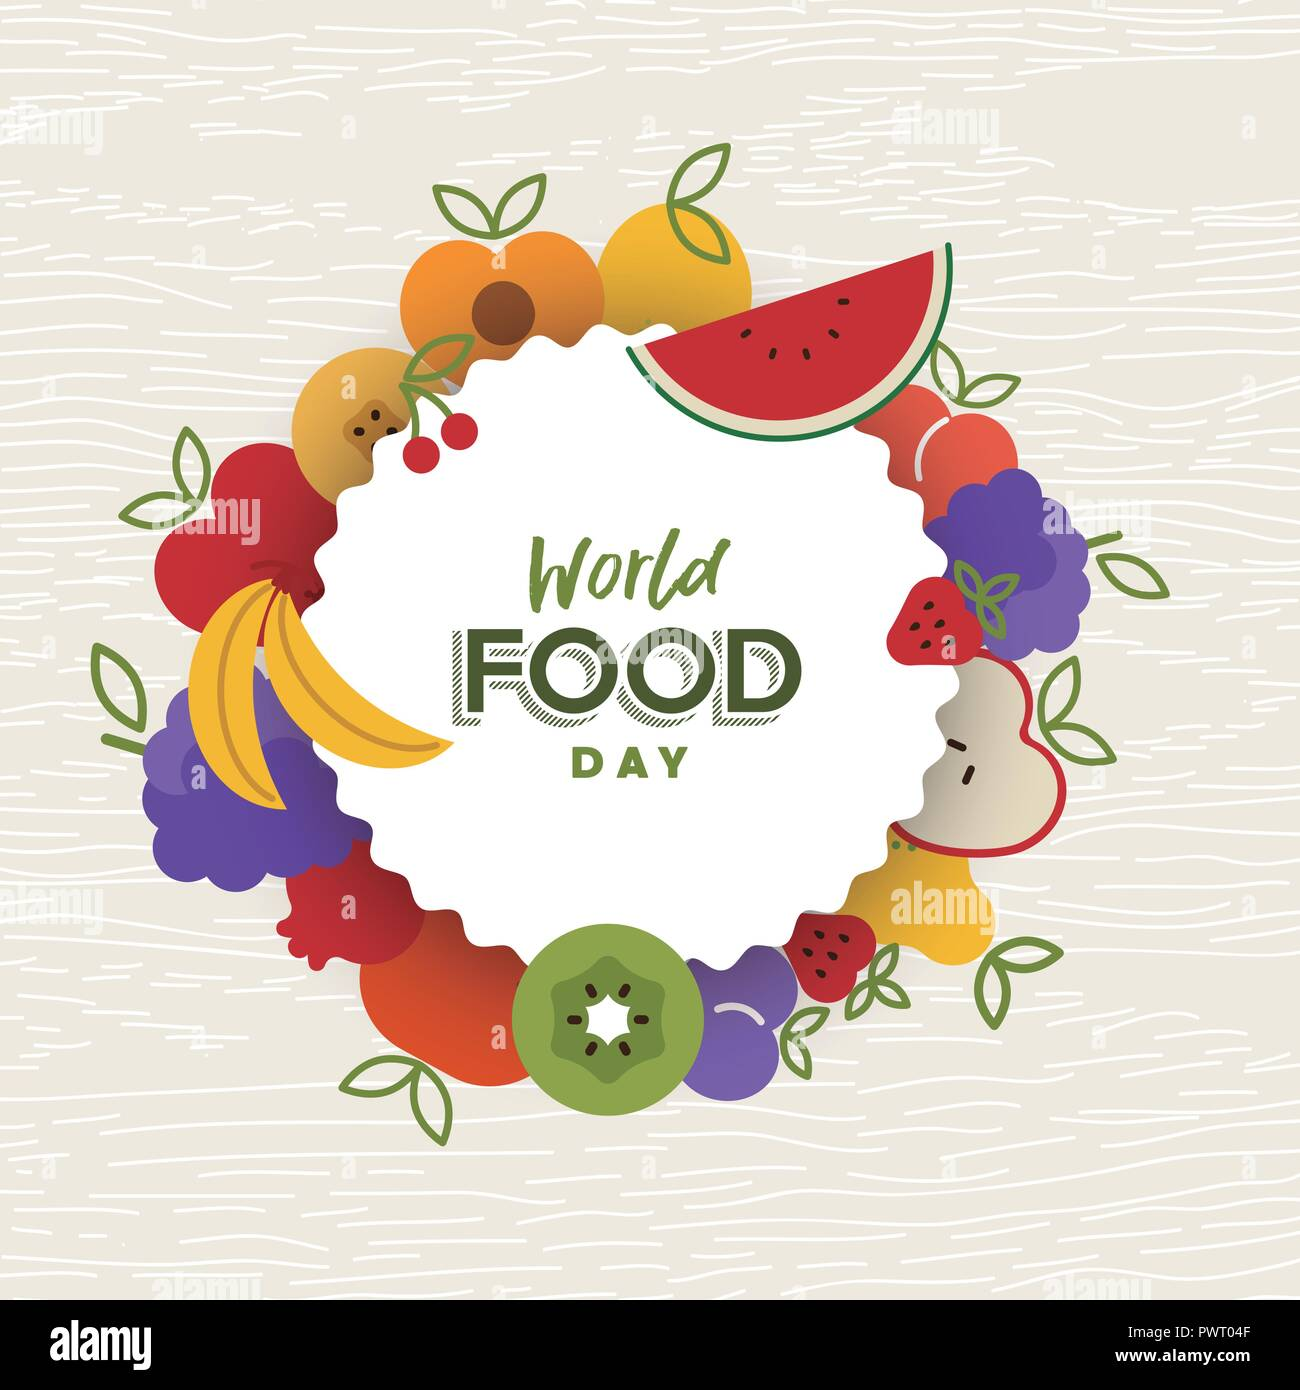 World Food Day greeting card illustration for nutrition and healthy diet with colorful flat cartoon fruit icons. - Stock Image